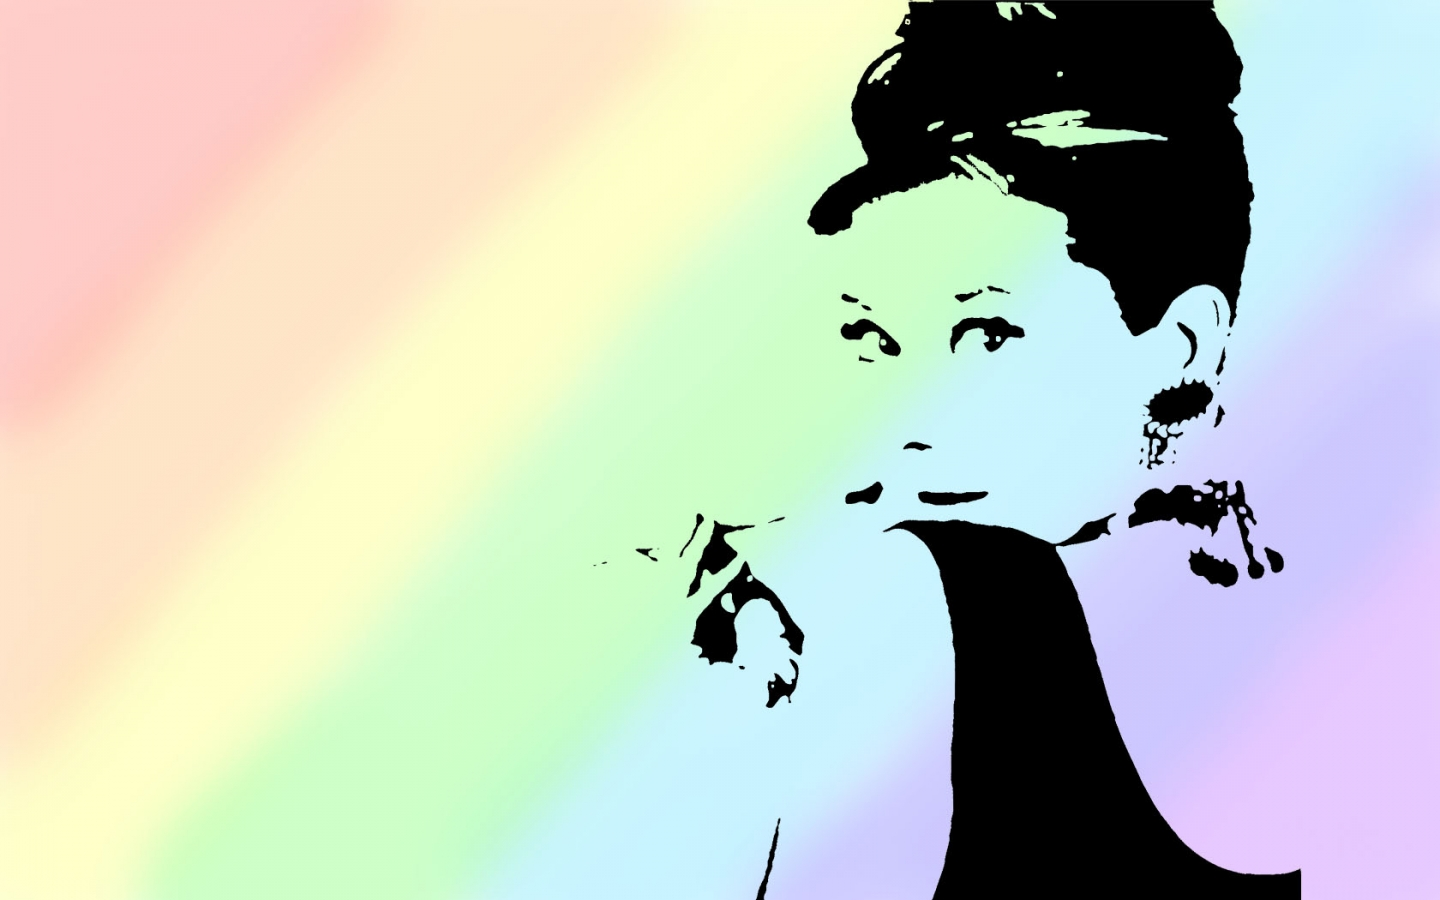 35141 more audrey hepburn wallpaper thelnie blogs 1440x900jpg 1440x900